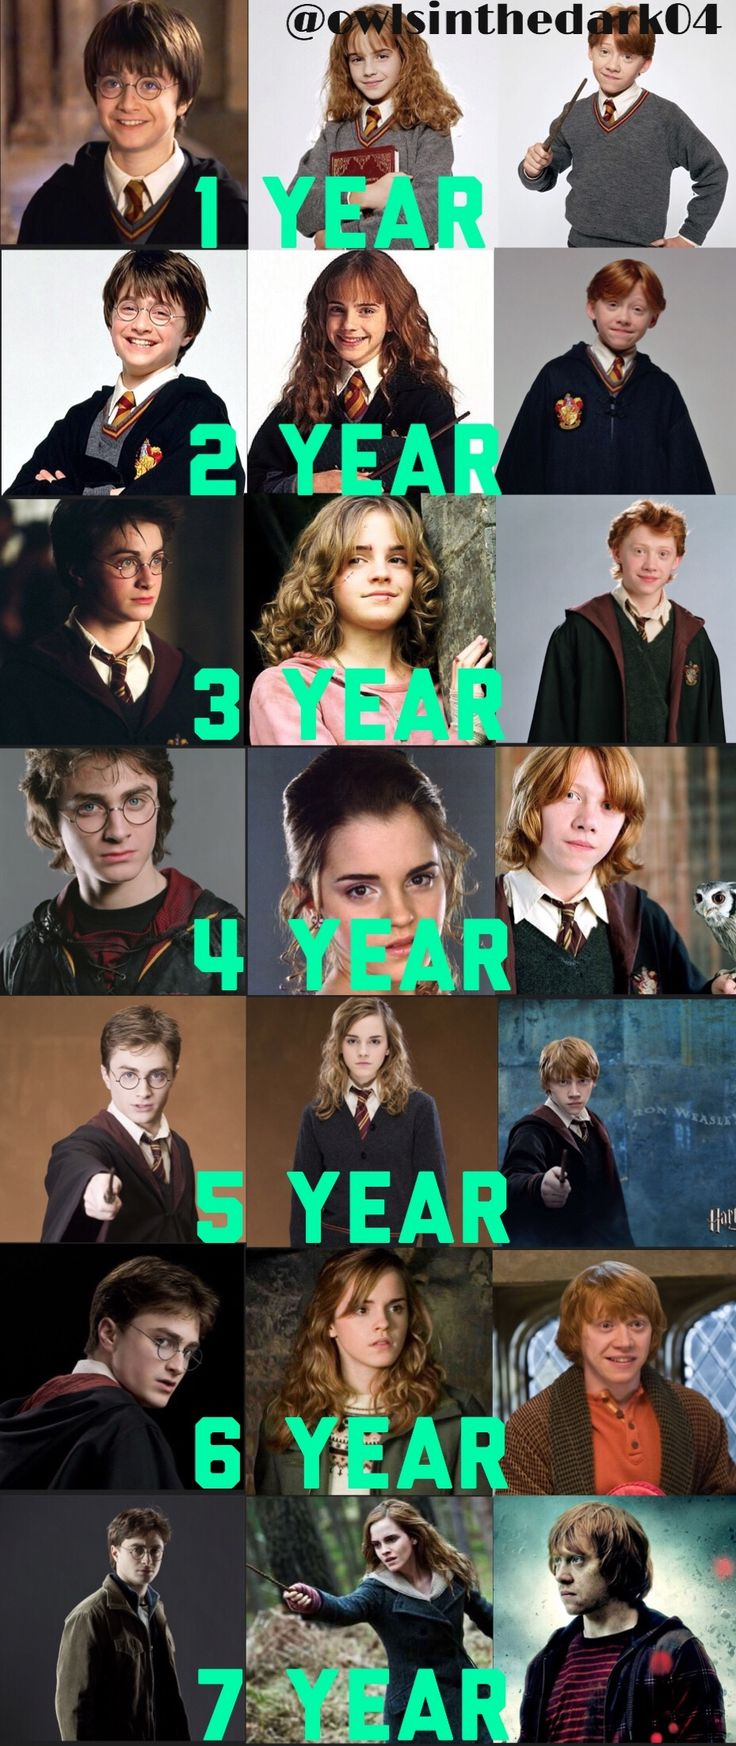 Hermione Granger, Ron Weasley and Harry Potter https://pagez.com/4136/36-rickdiculous-rick-and-morty-facts